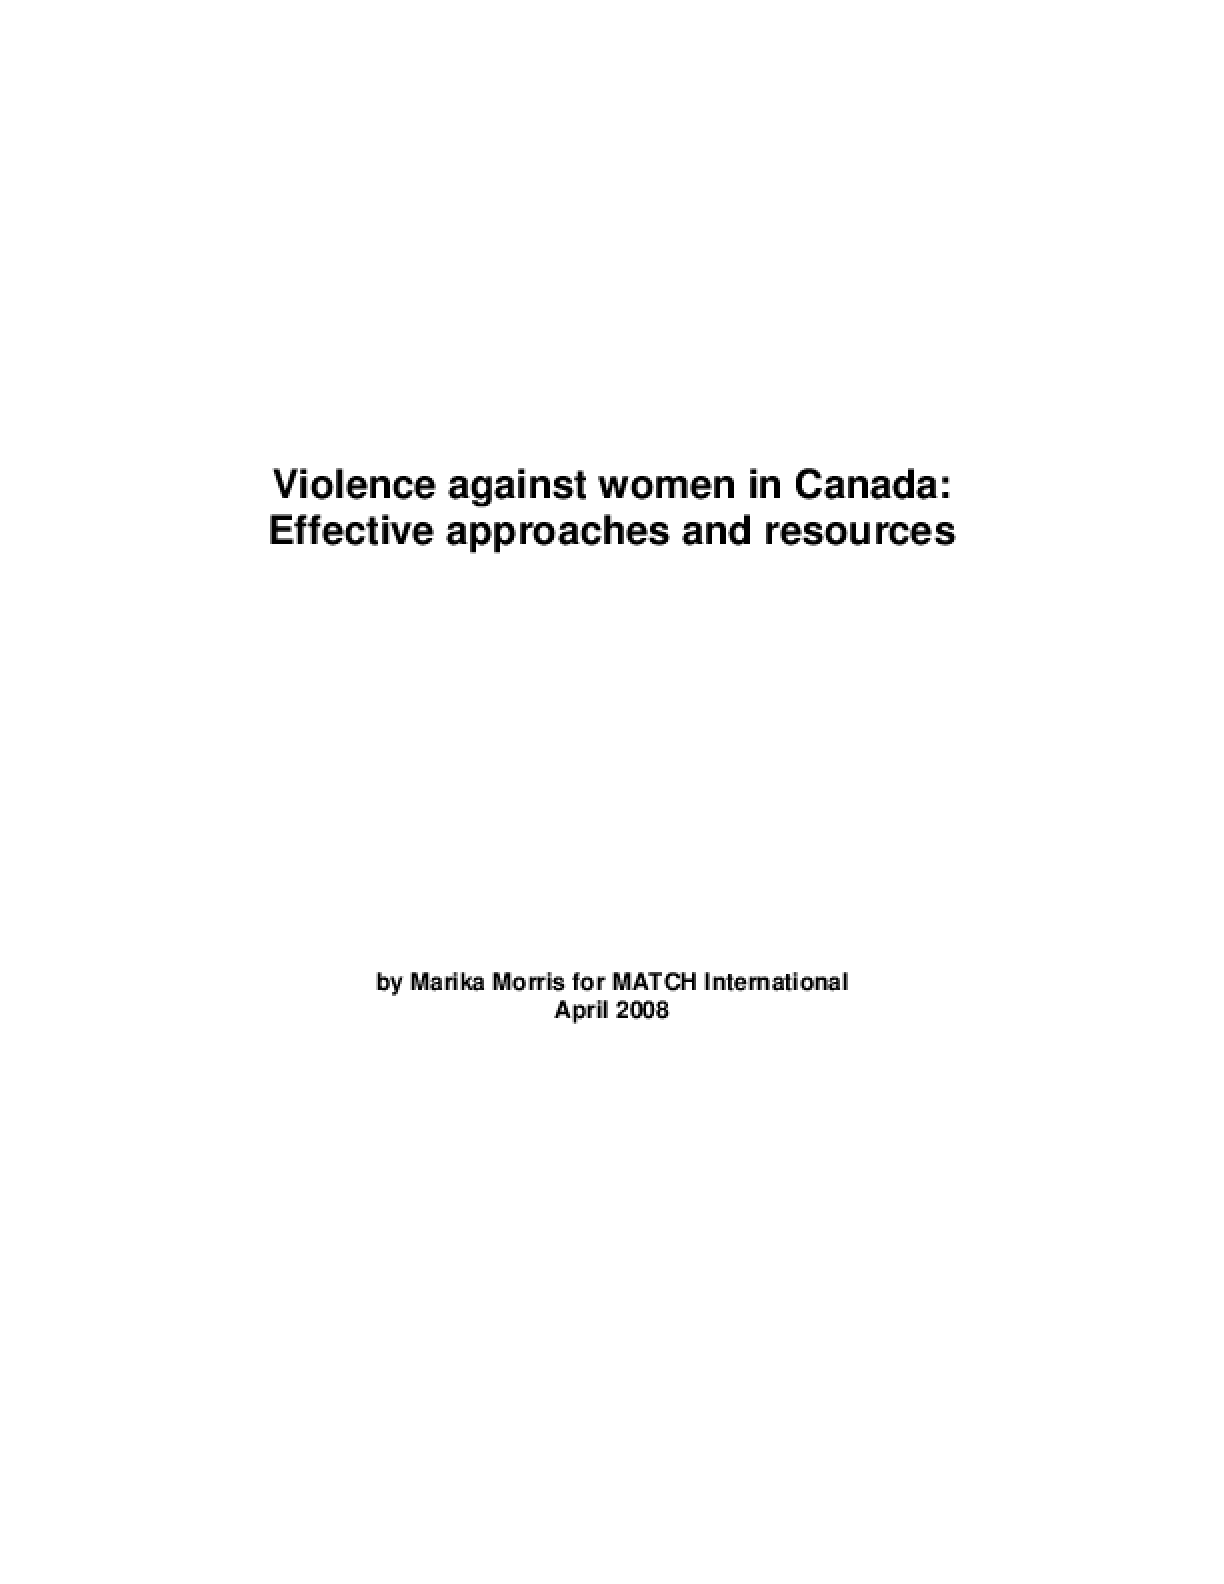 Violence Against Women and Canada: Effective Approaches and Resources